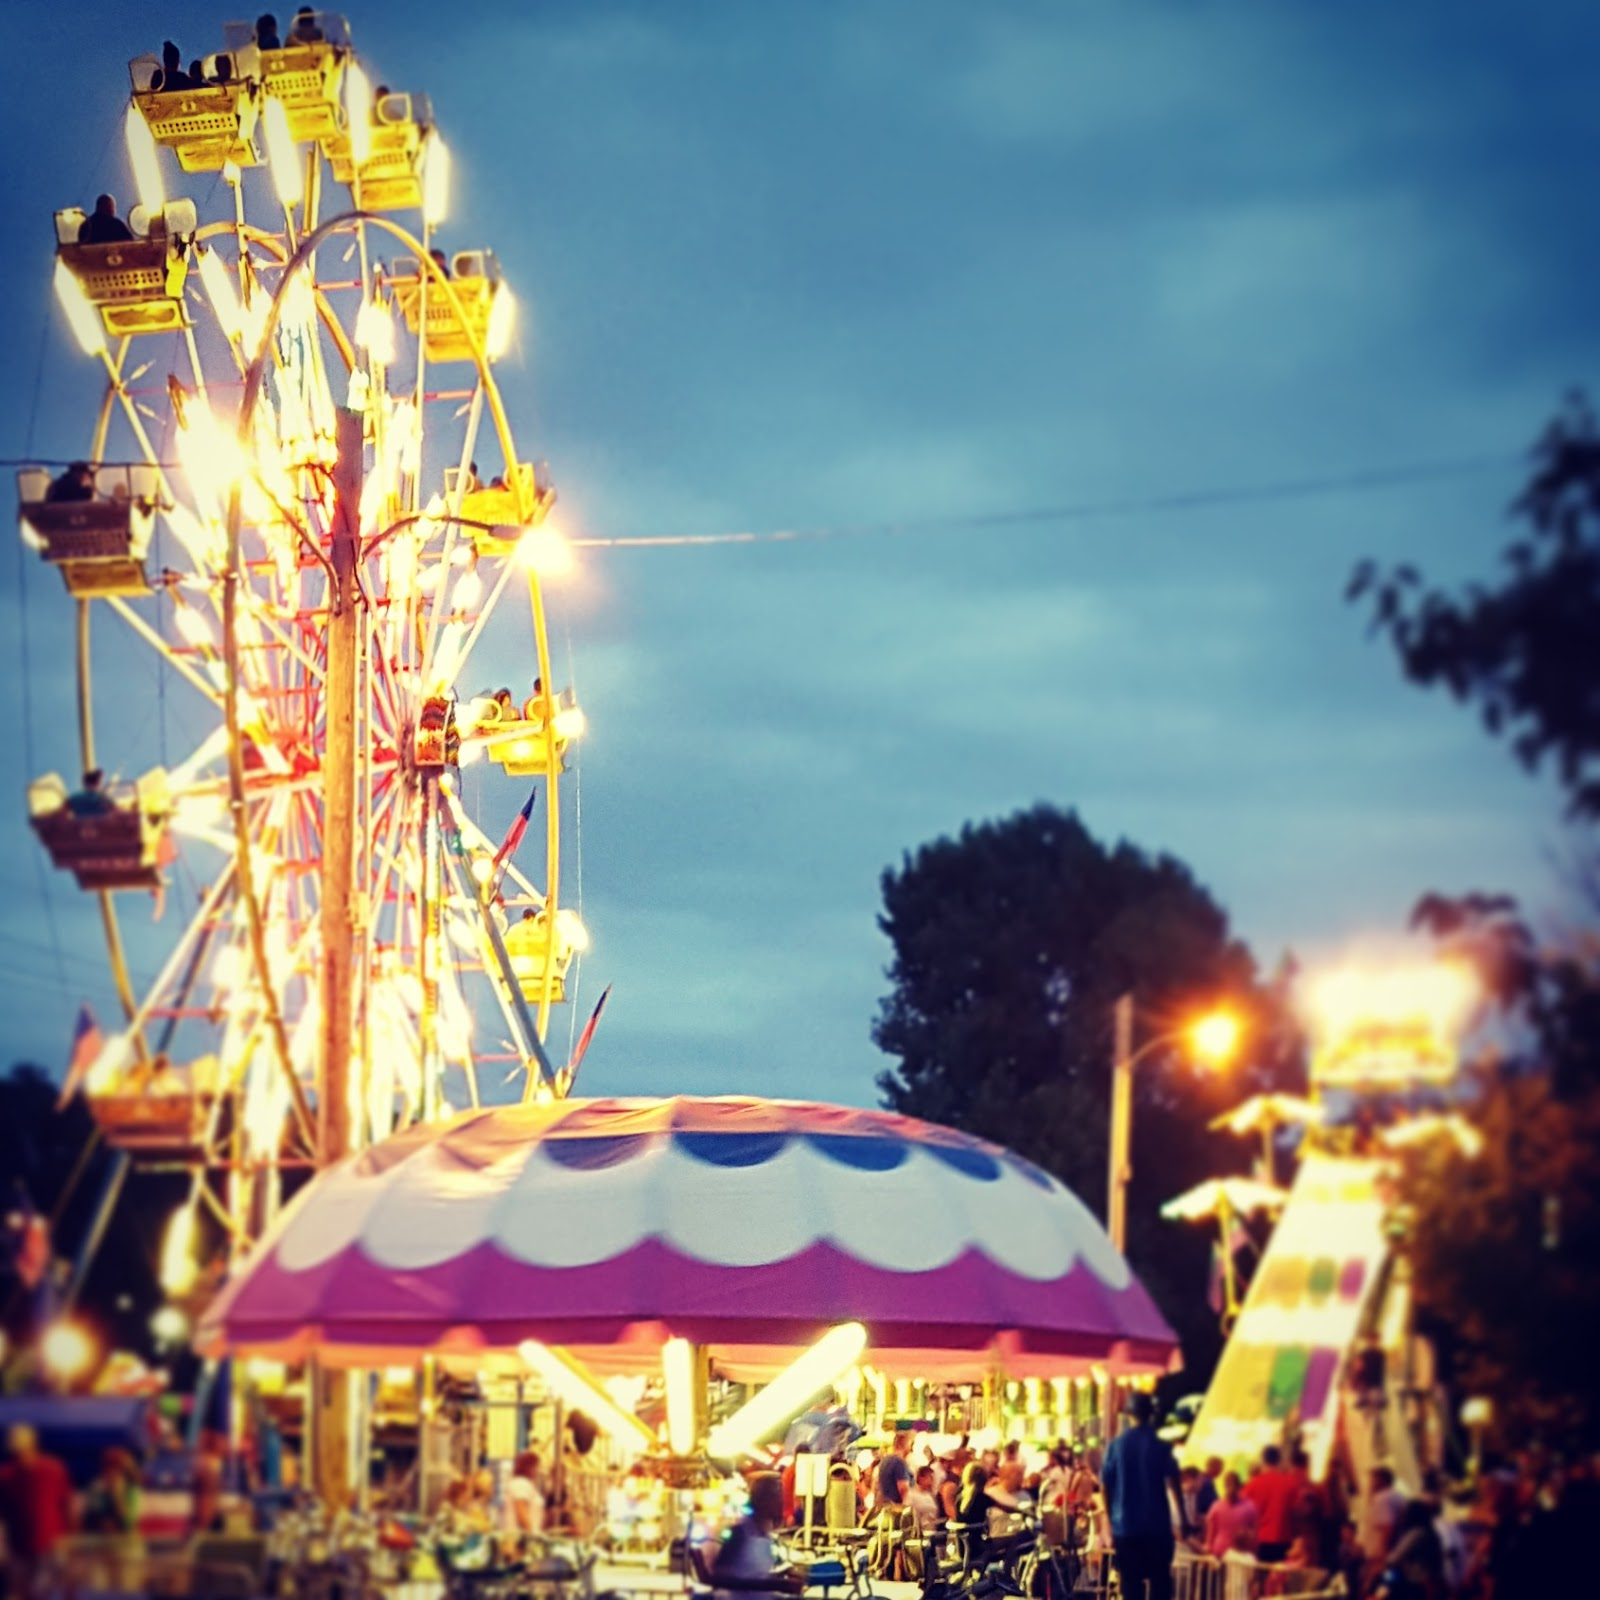 It might be the cheap carnival rides, the livestock shows, the exhibits, or the deep fried everything. When I say everything, I really mean everything, too.